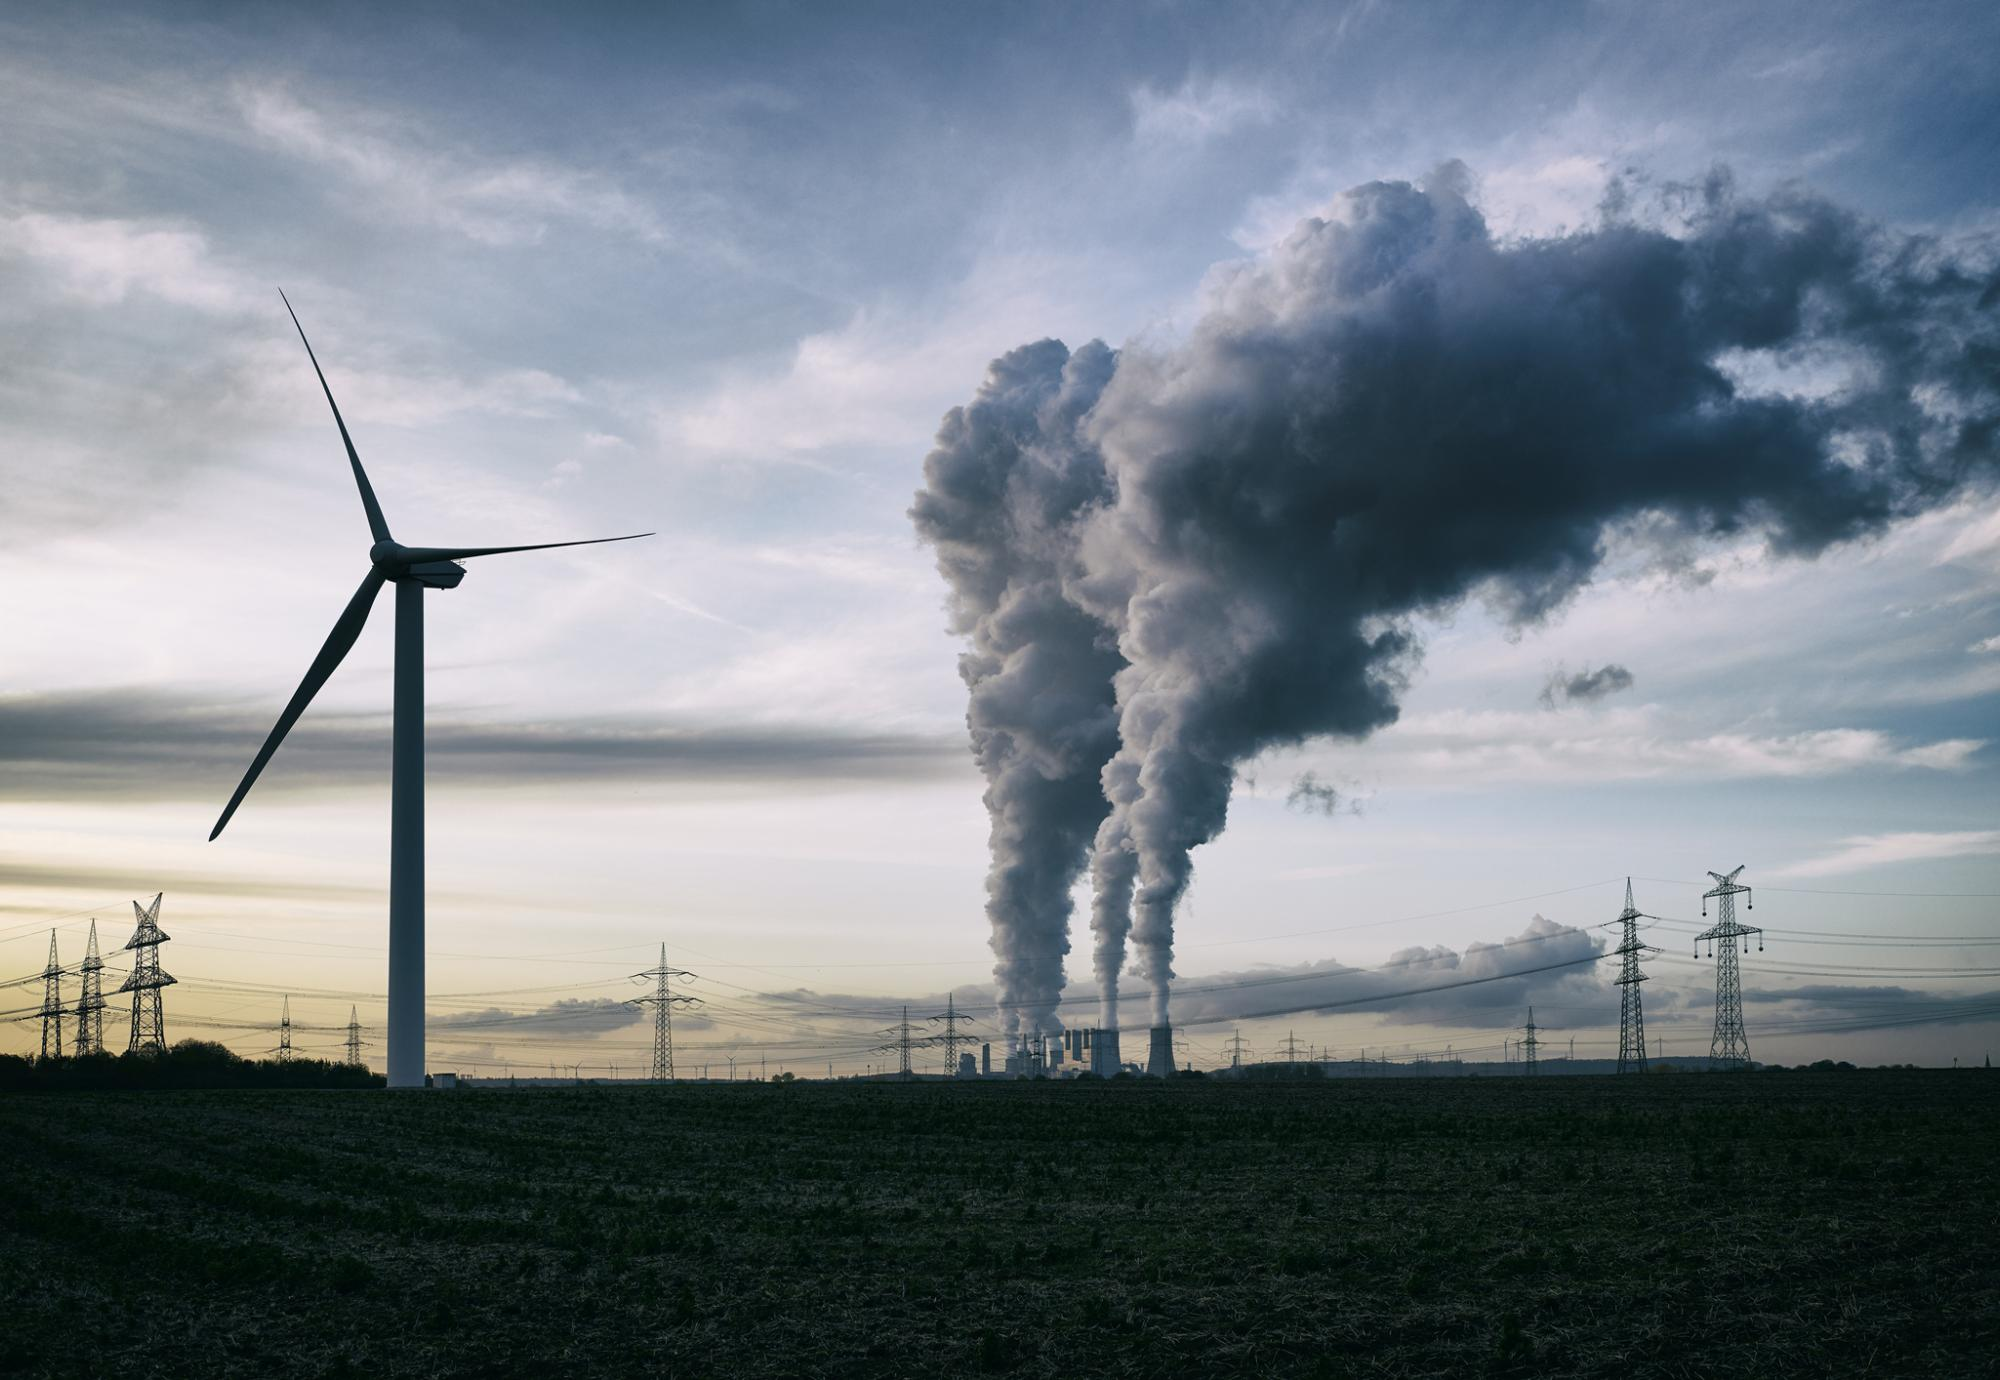 Wind turbine stands in the foreground as coal power station puts steam into atmosphere.